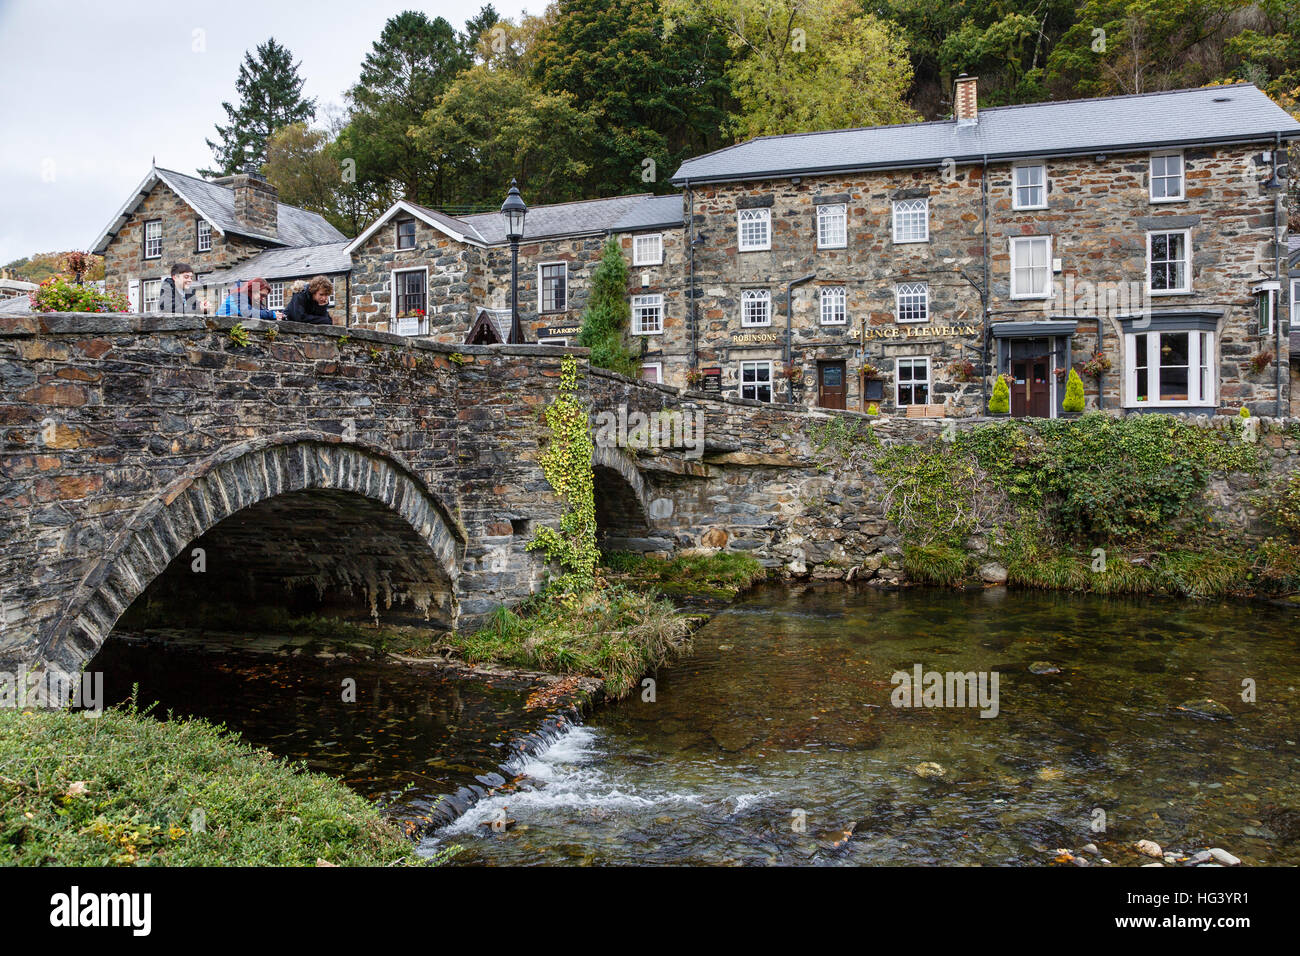 Bridge over the River Colwyn and the Prince Llewelyn Hotel at Beddgelert, Snowdonia, North Wales. - Stock Image